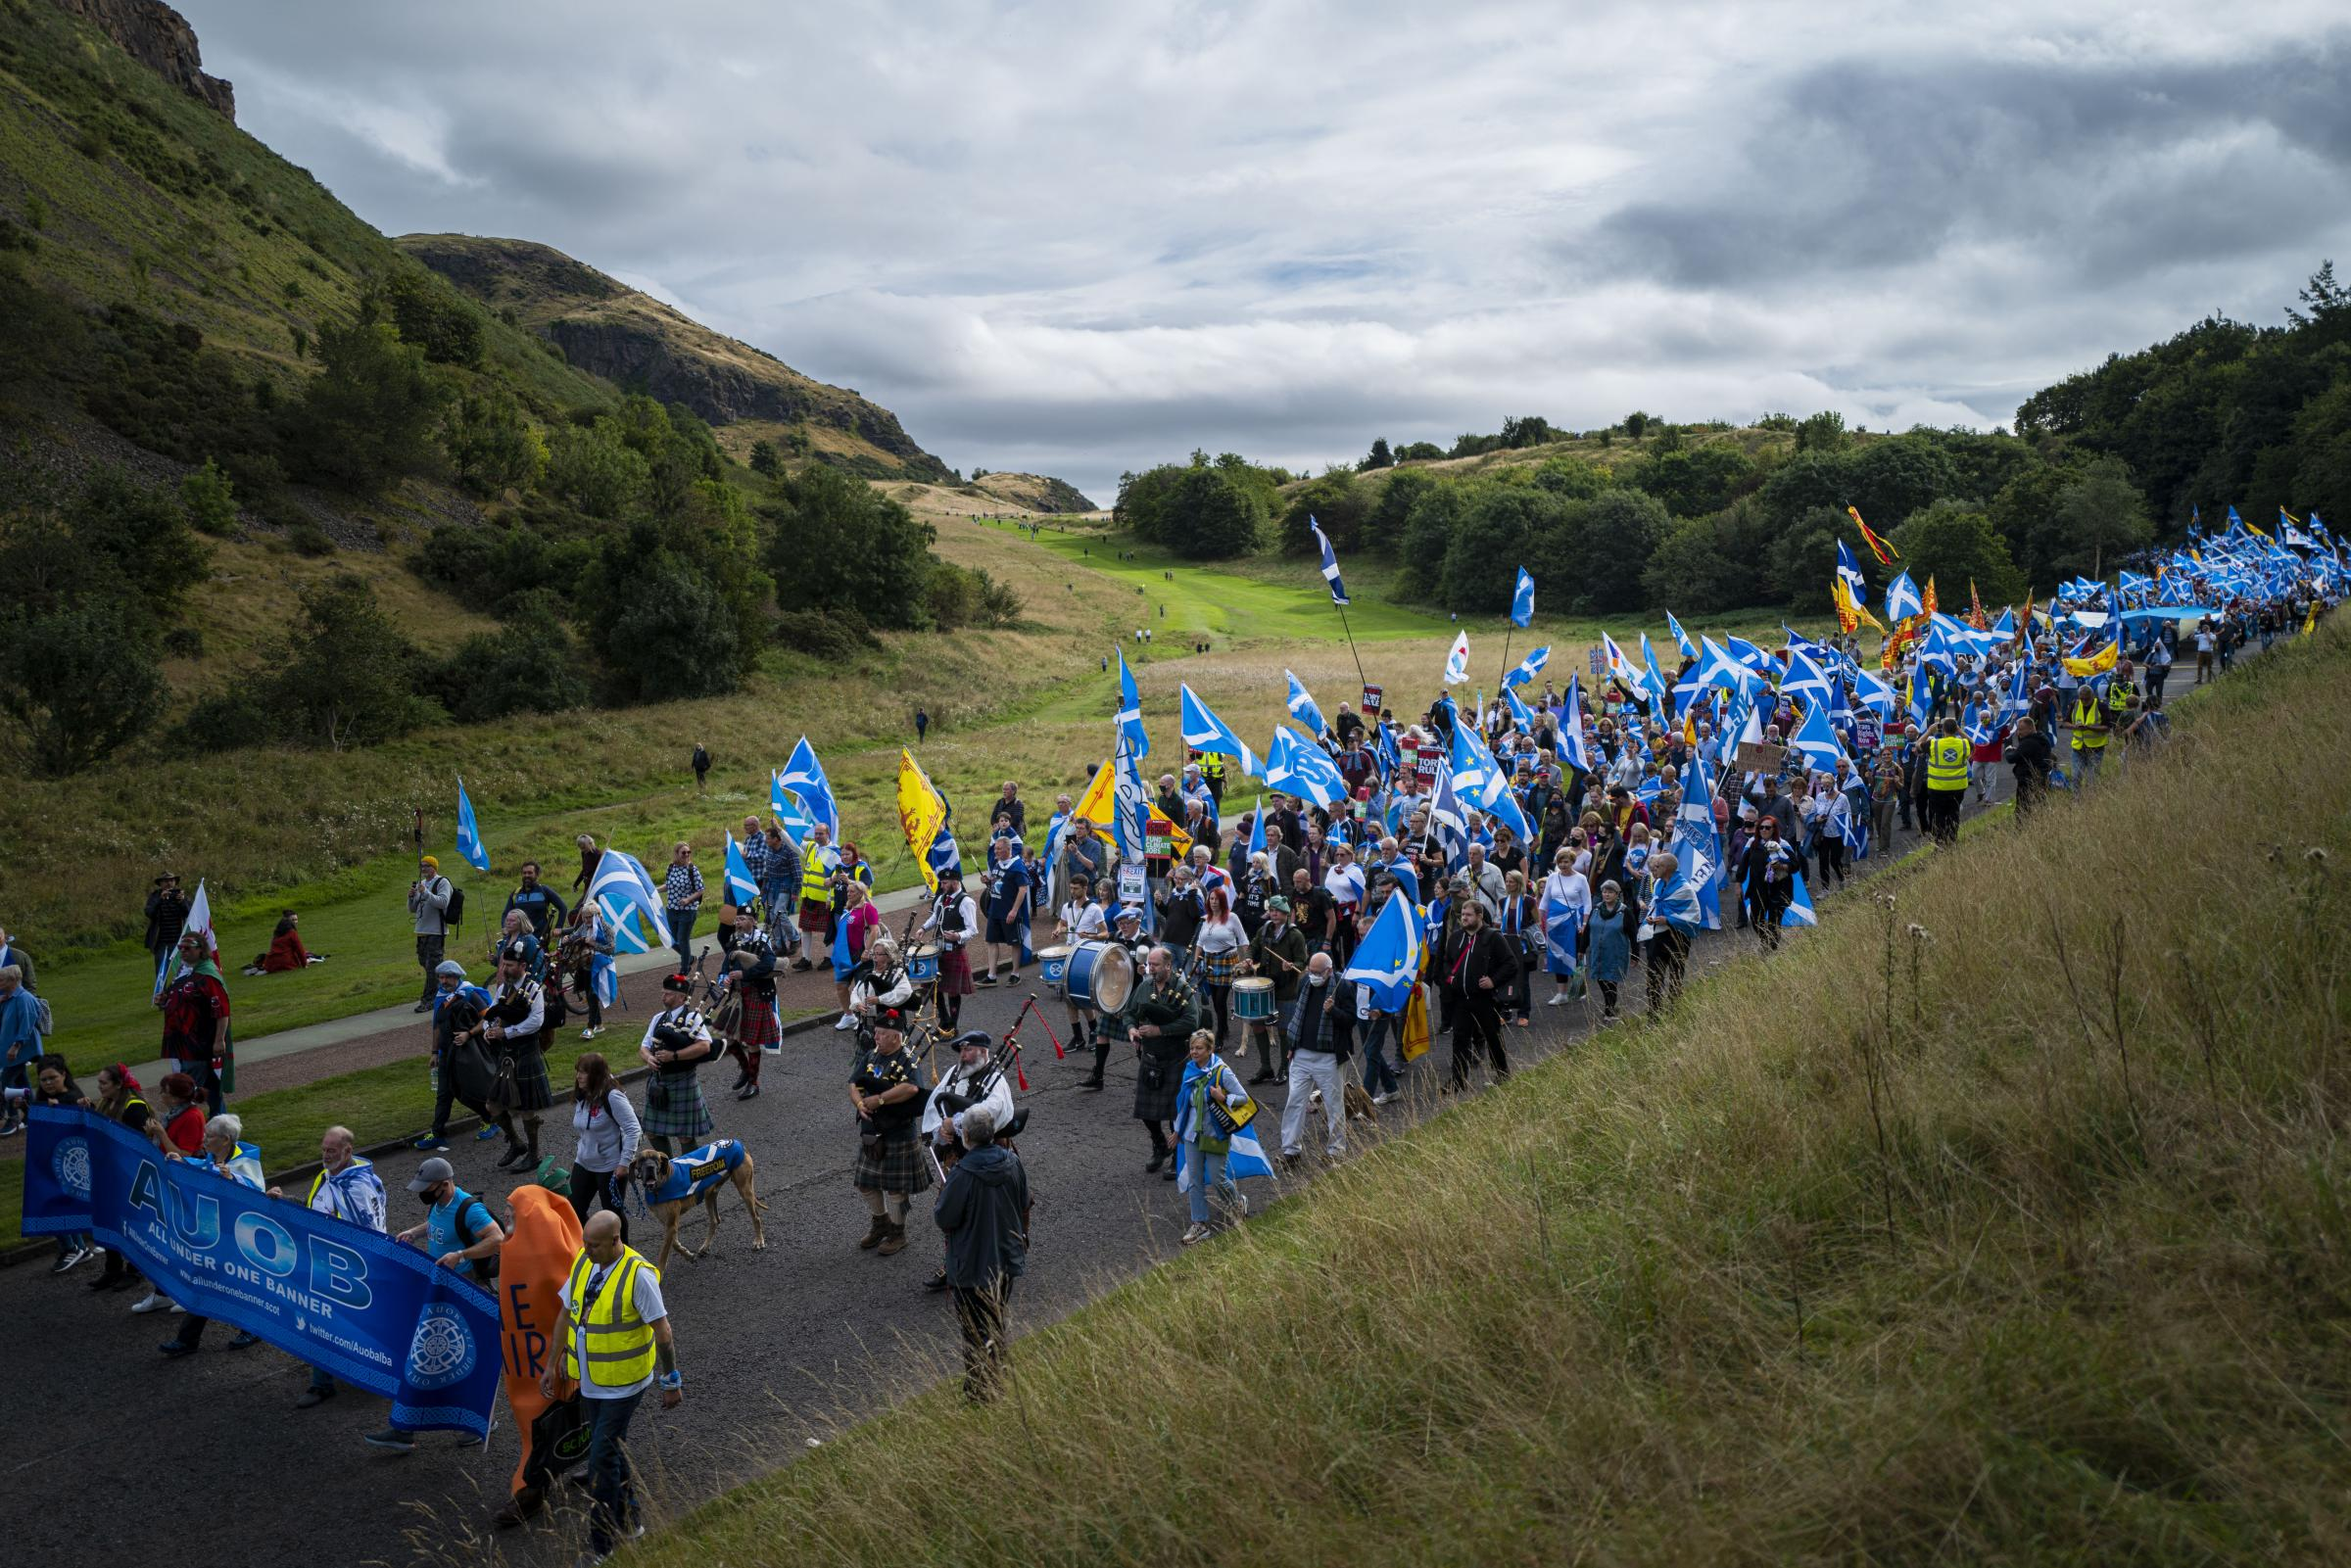 IN PICTURES: 'Five thousand people' march at Edinburgh pro-independence rally